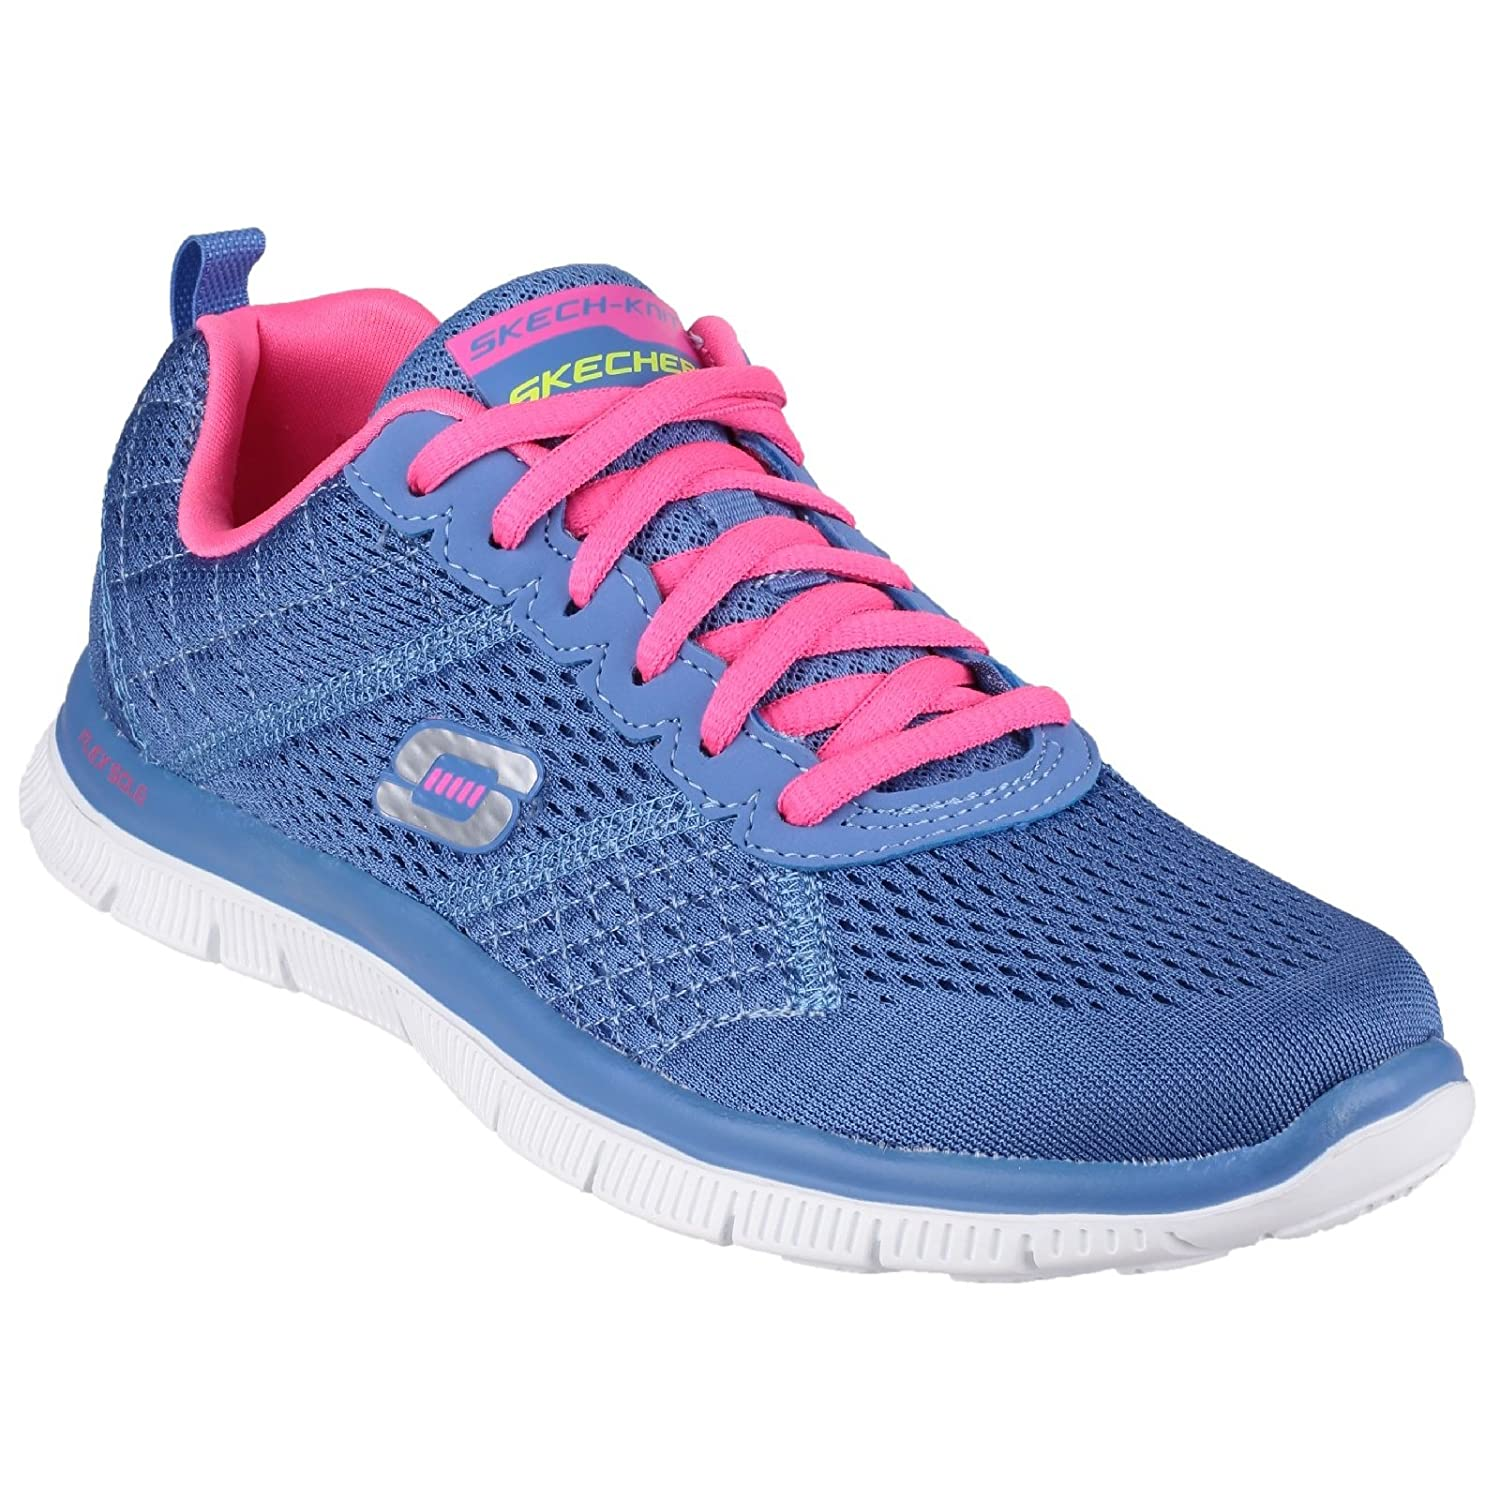 Skechers Flex Appeal - Obvious Choice, Zapatos para Mujer 36 EU|Morado/Rosa